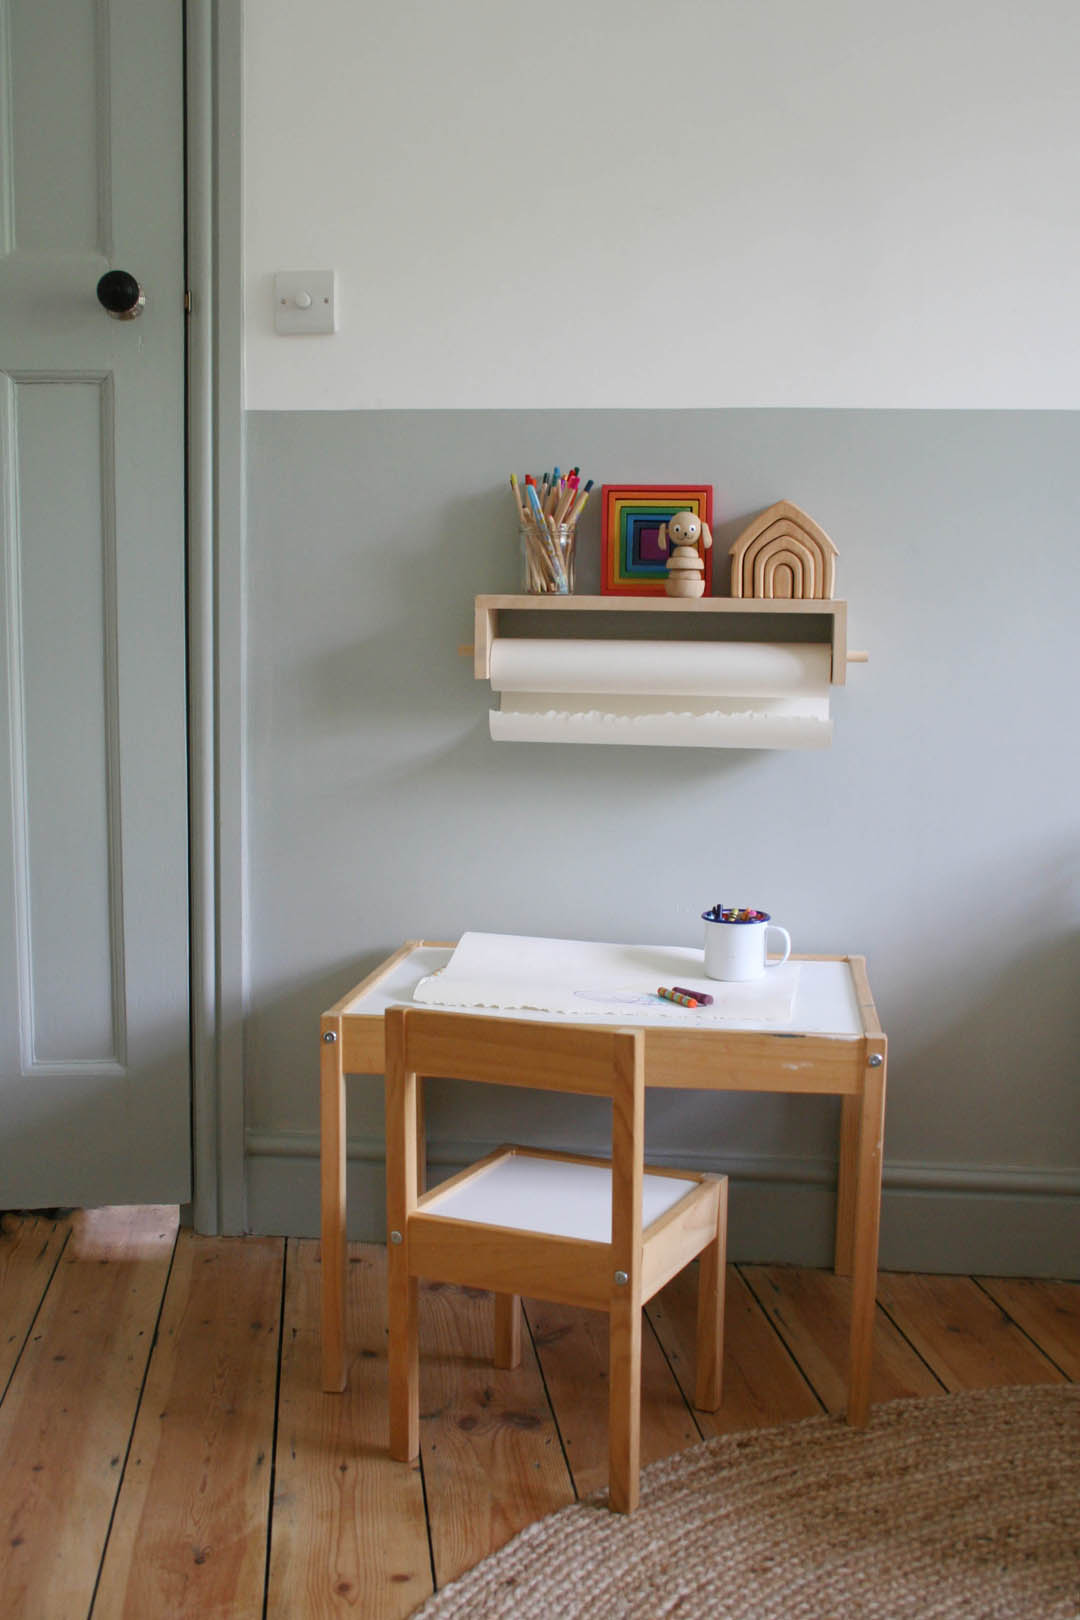 How to do a half-painted wall for a child's bedroom